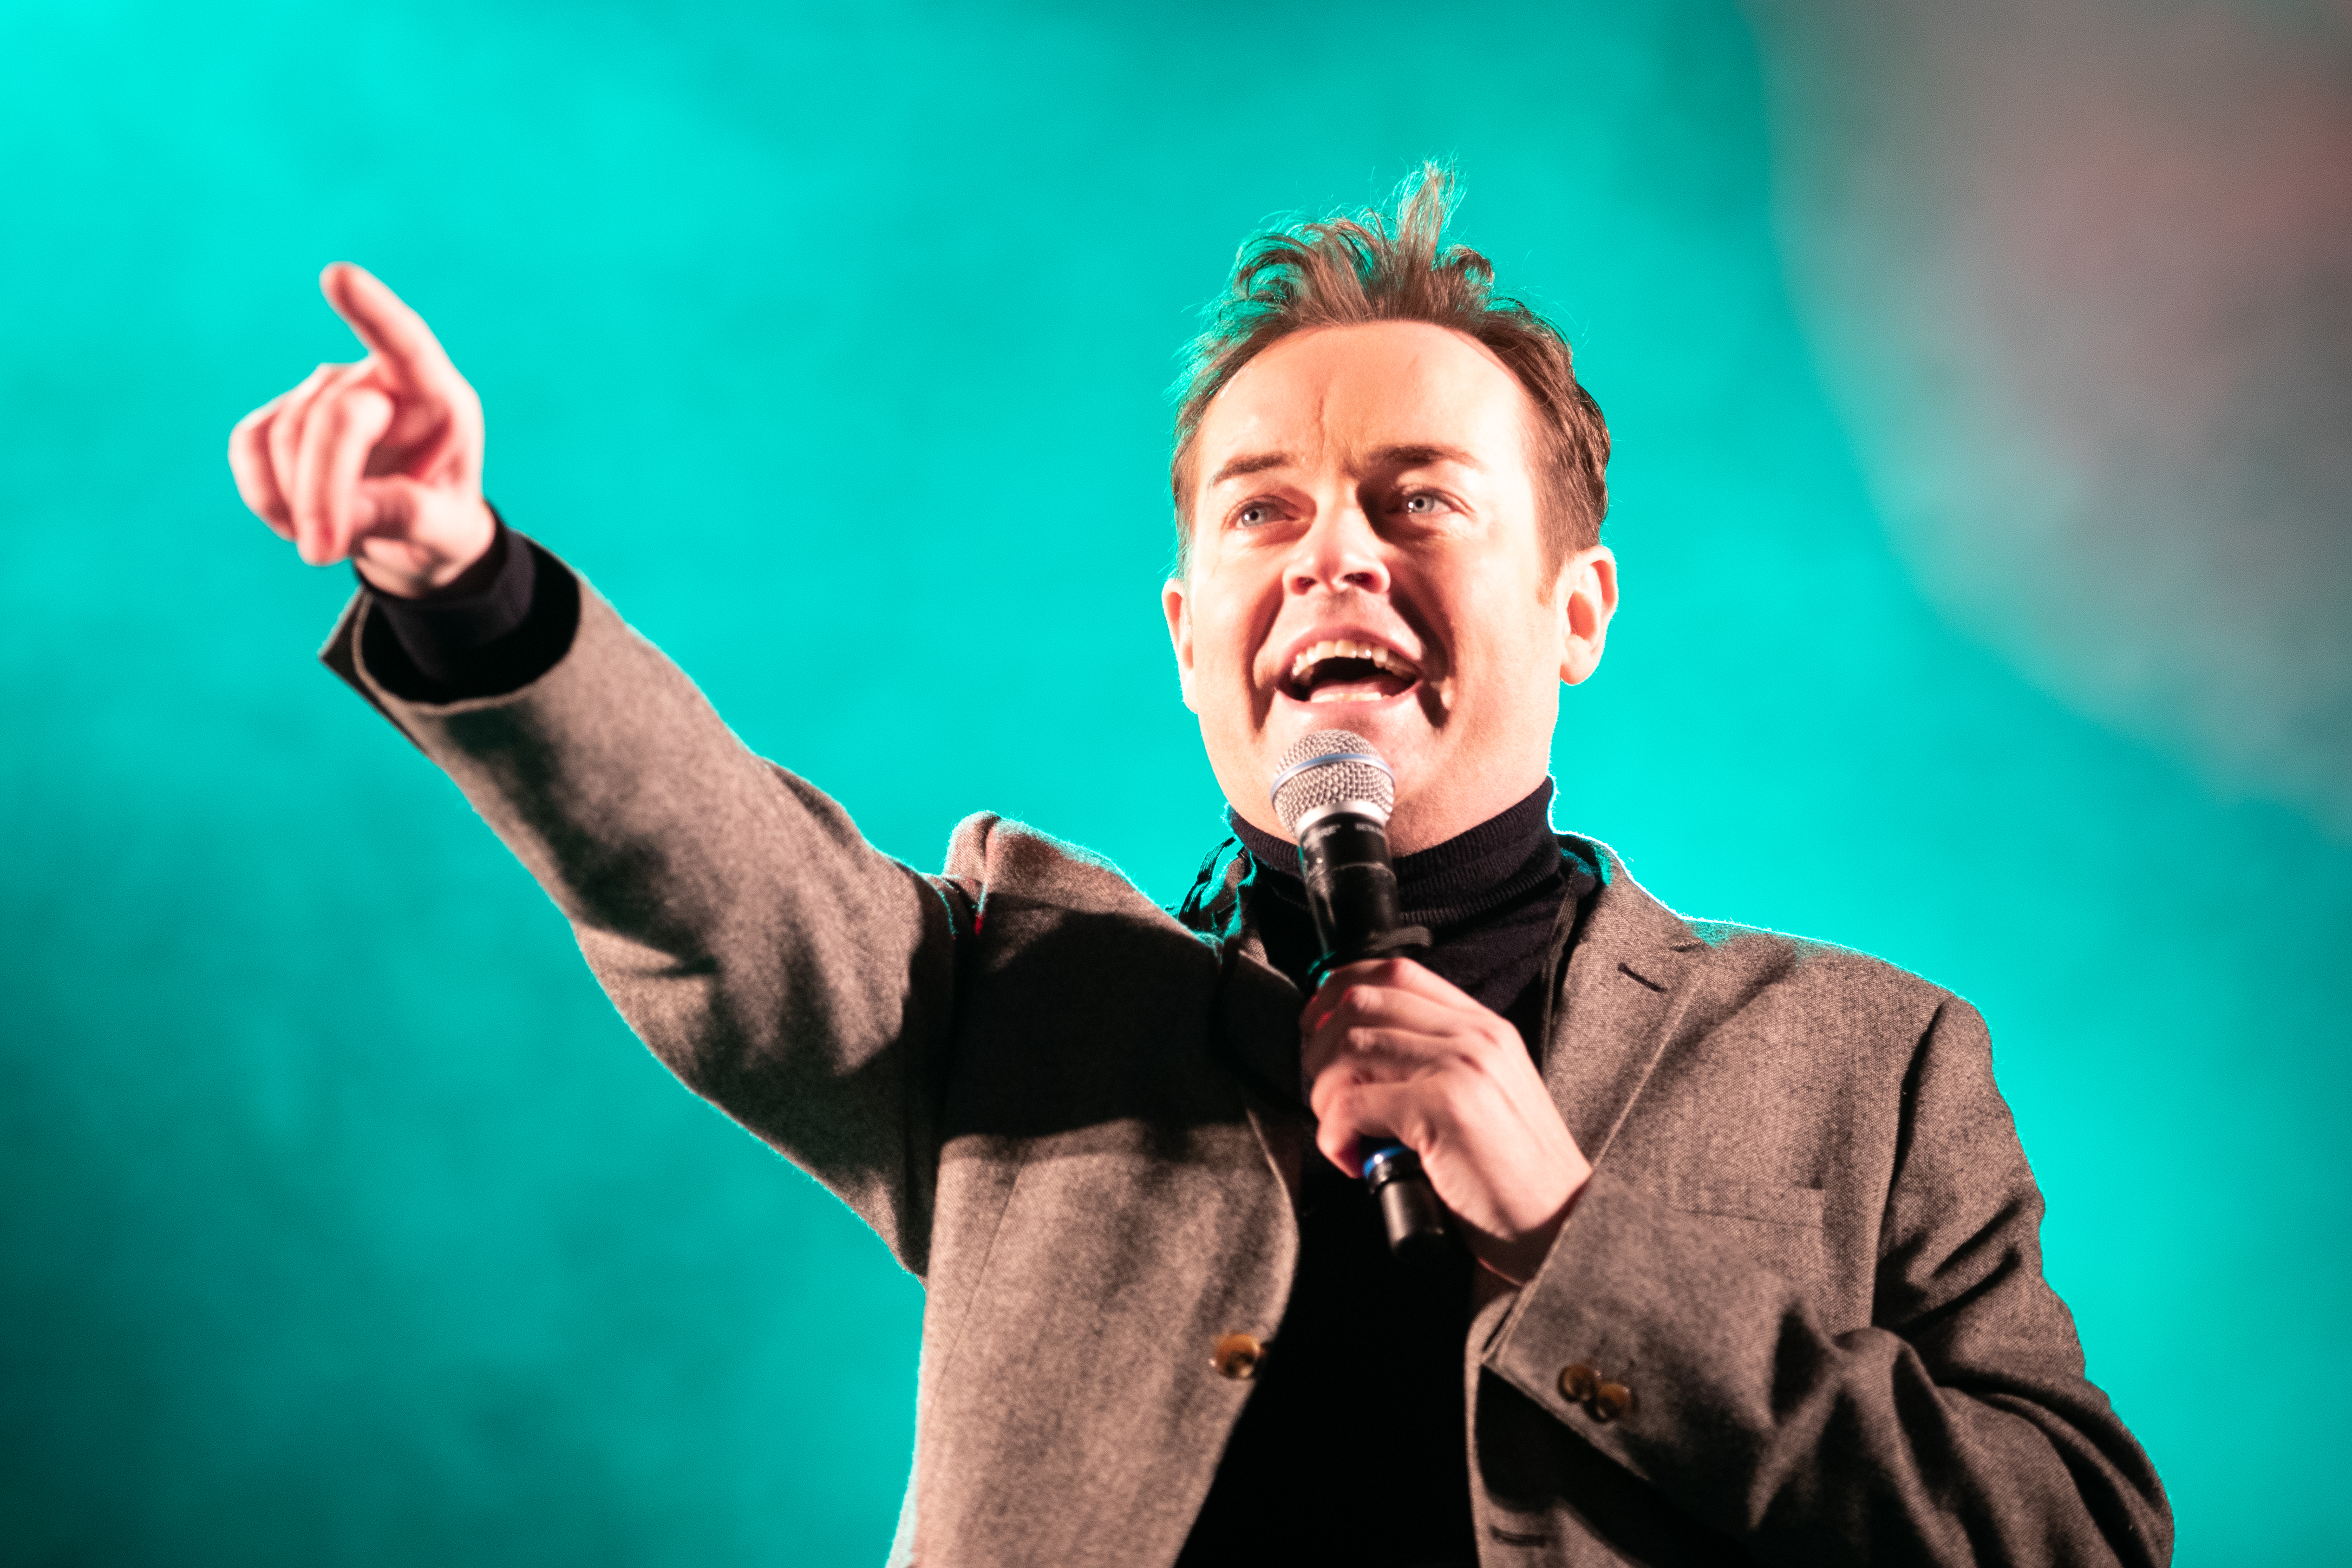 Stephen Mulhern on the main stage during the City of Perth Winter Festival.